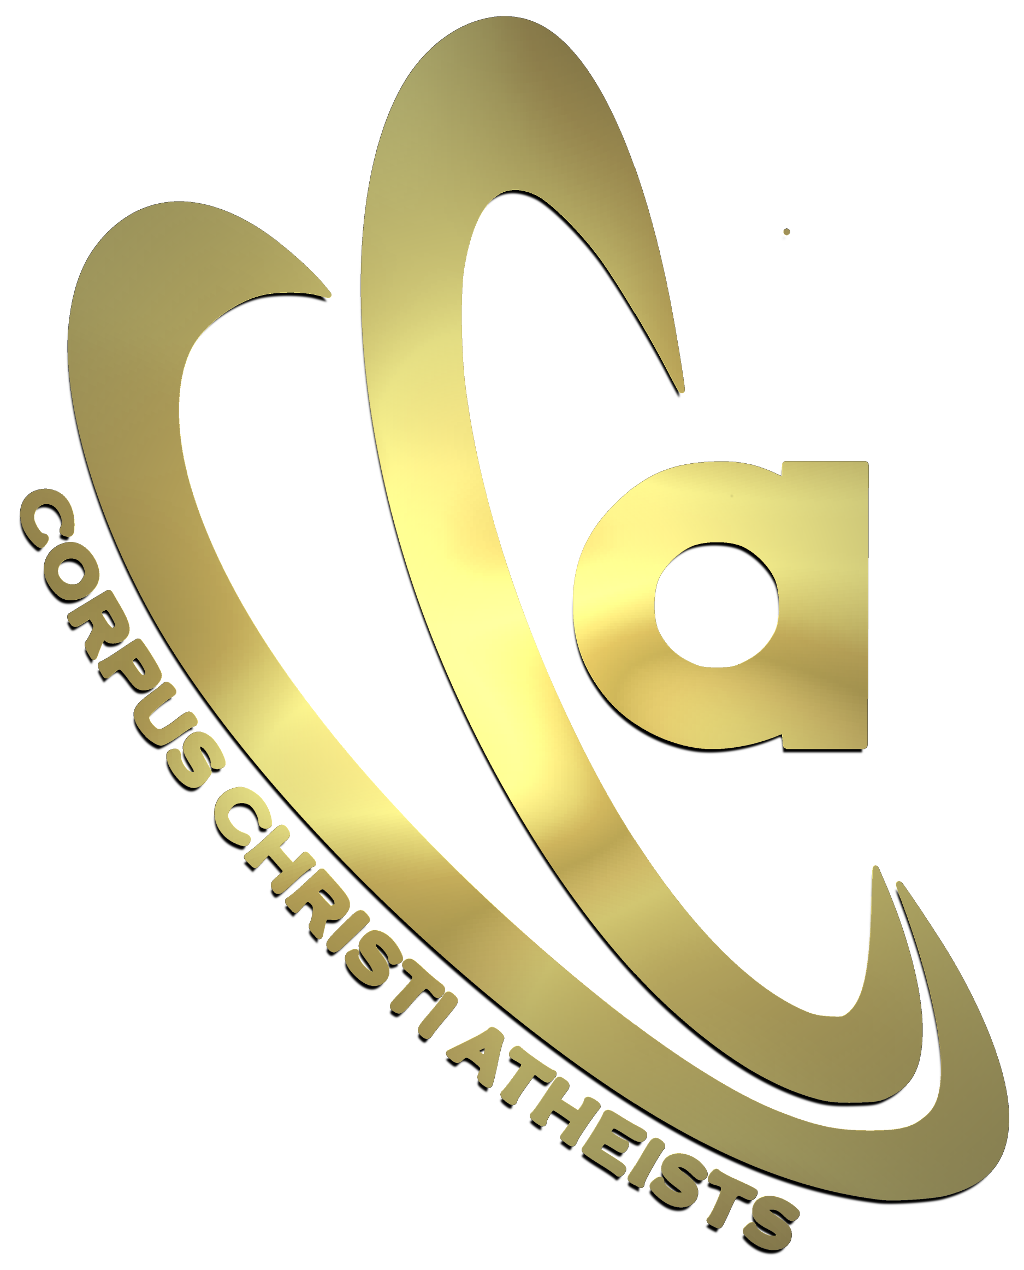 Old Corpus Christ Atheists logo